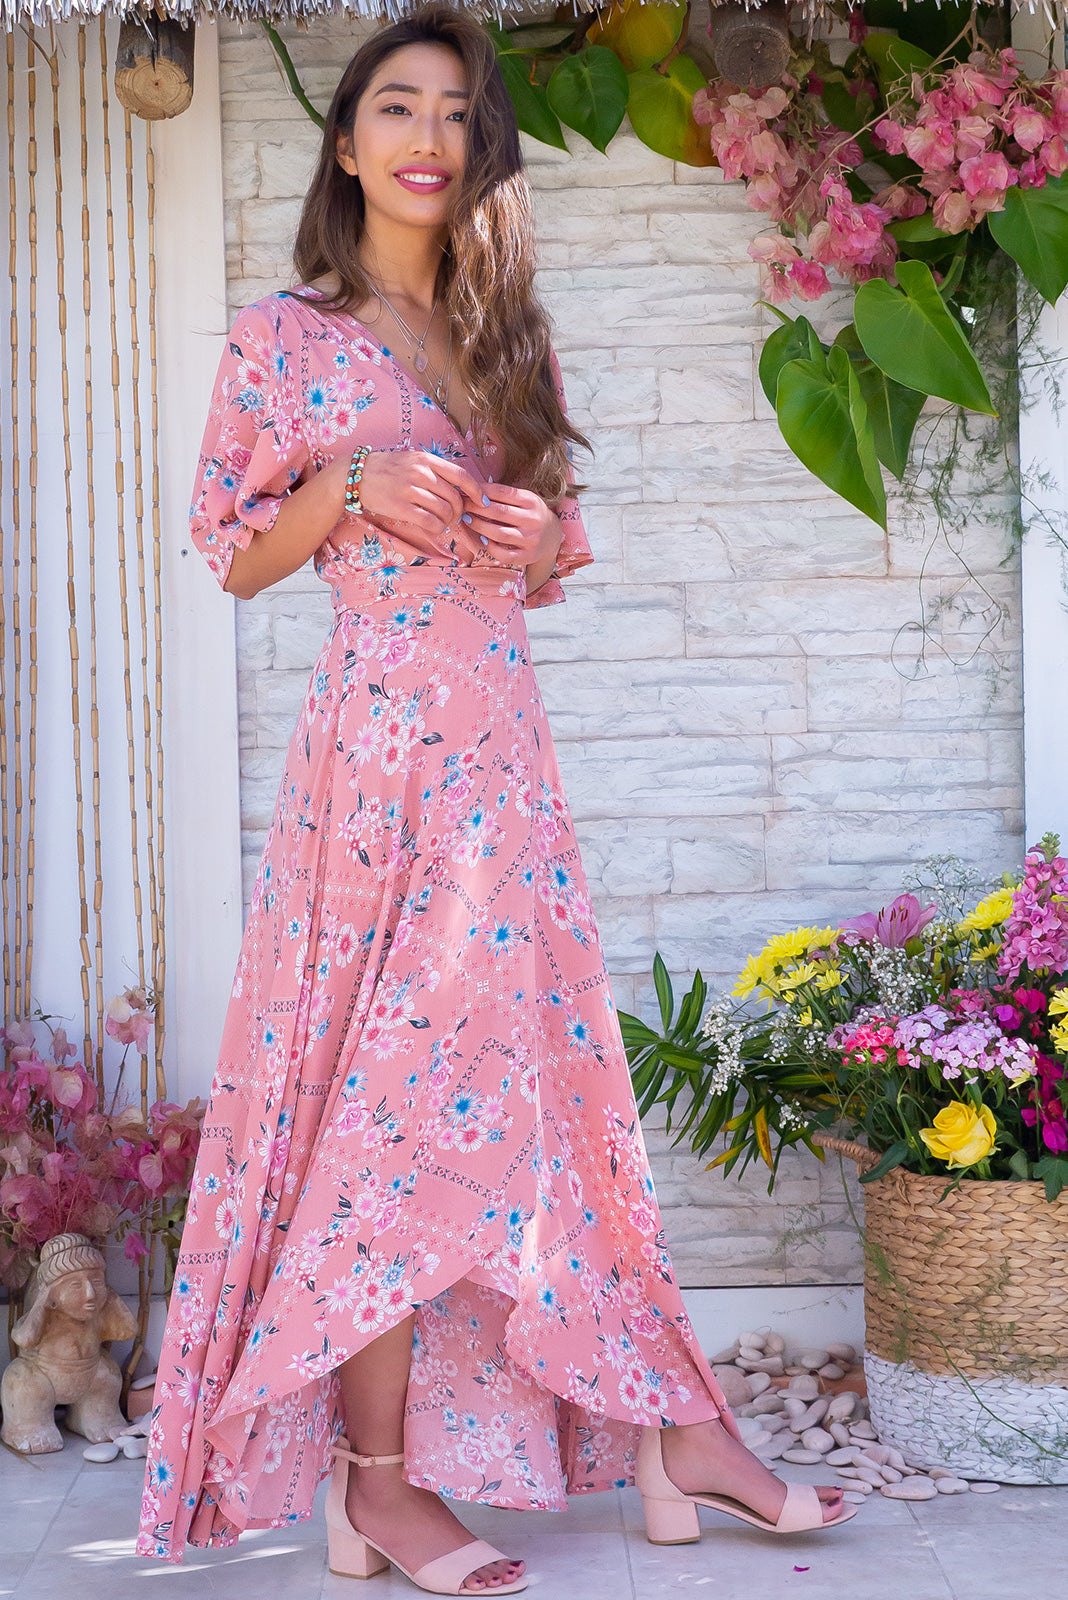 The Cinnamon Perfection Pink Maxi Wrap Dress features a pretty floral print on a sweet, pink, crinkle texture rayon fabric.